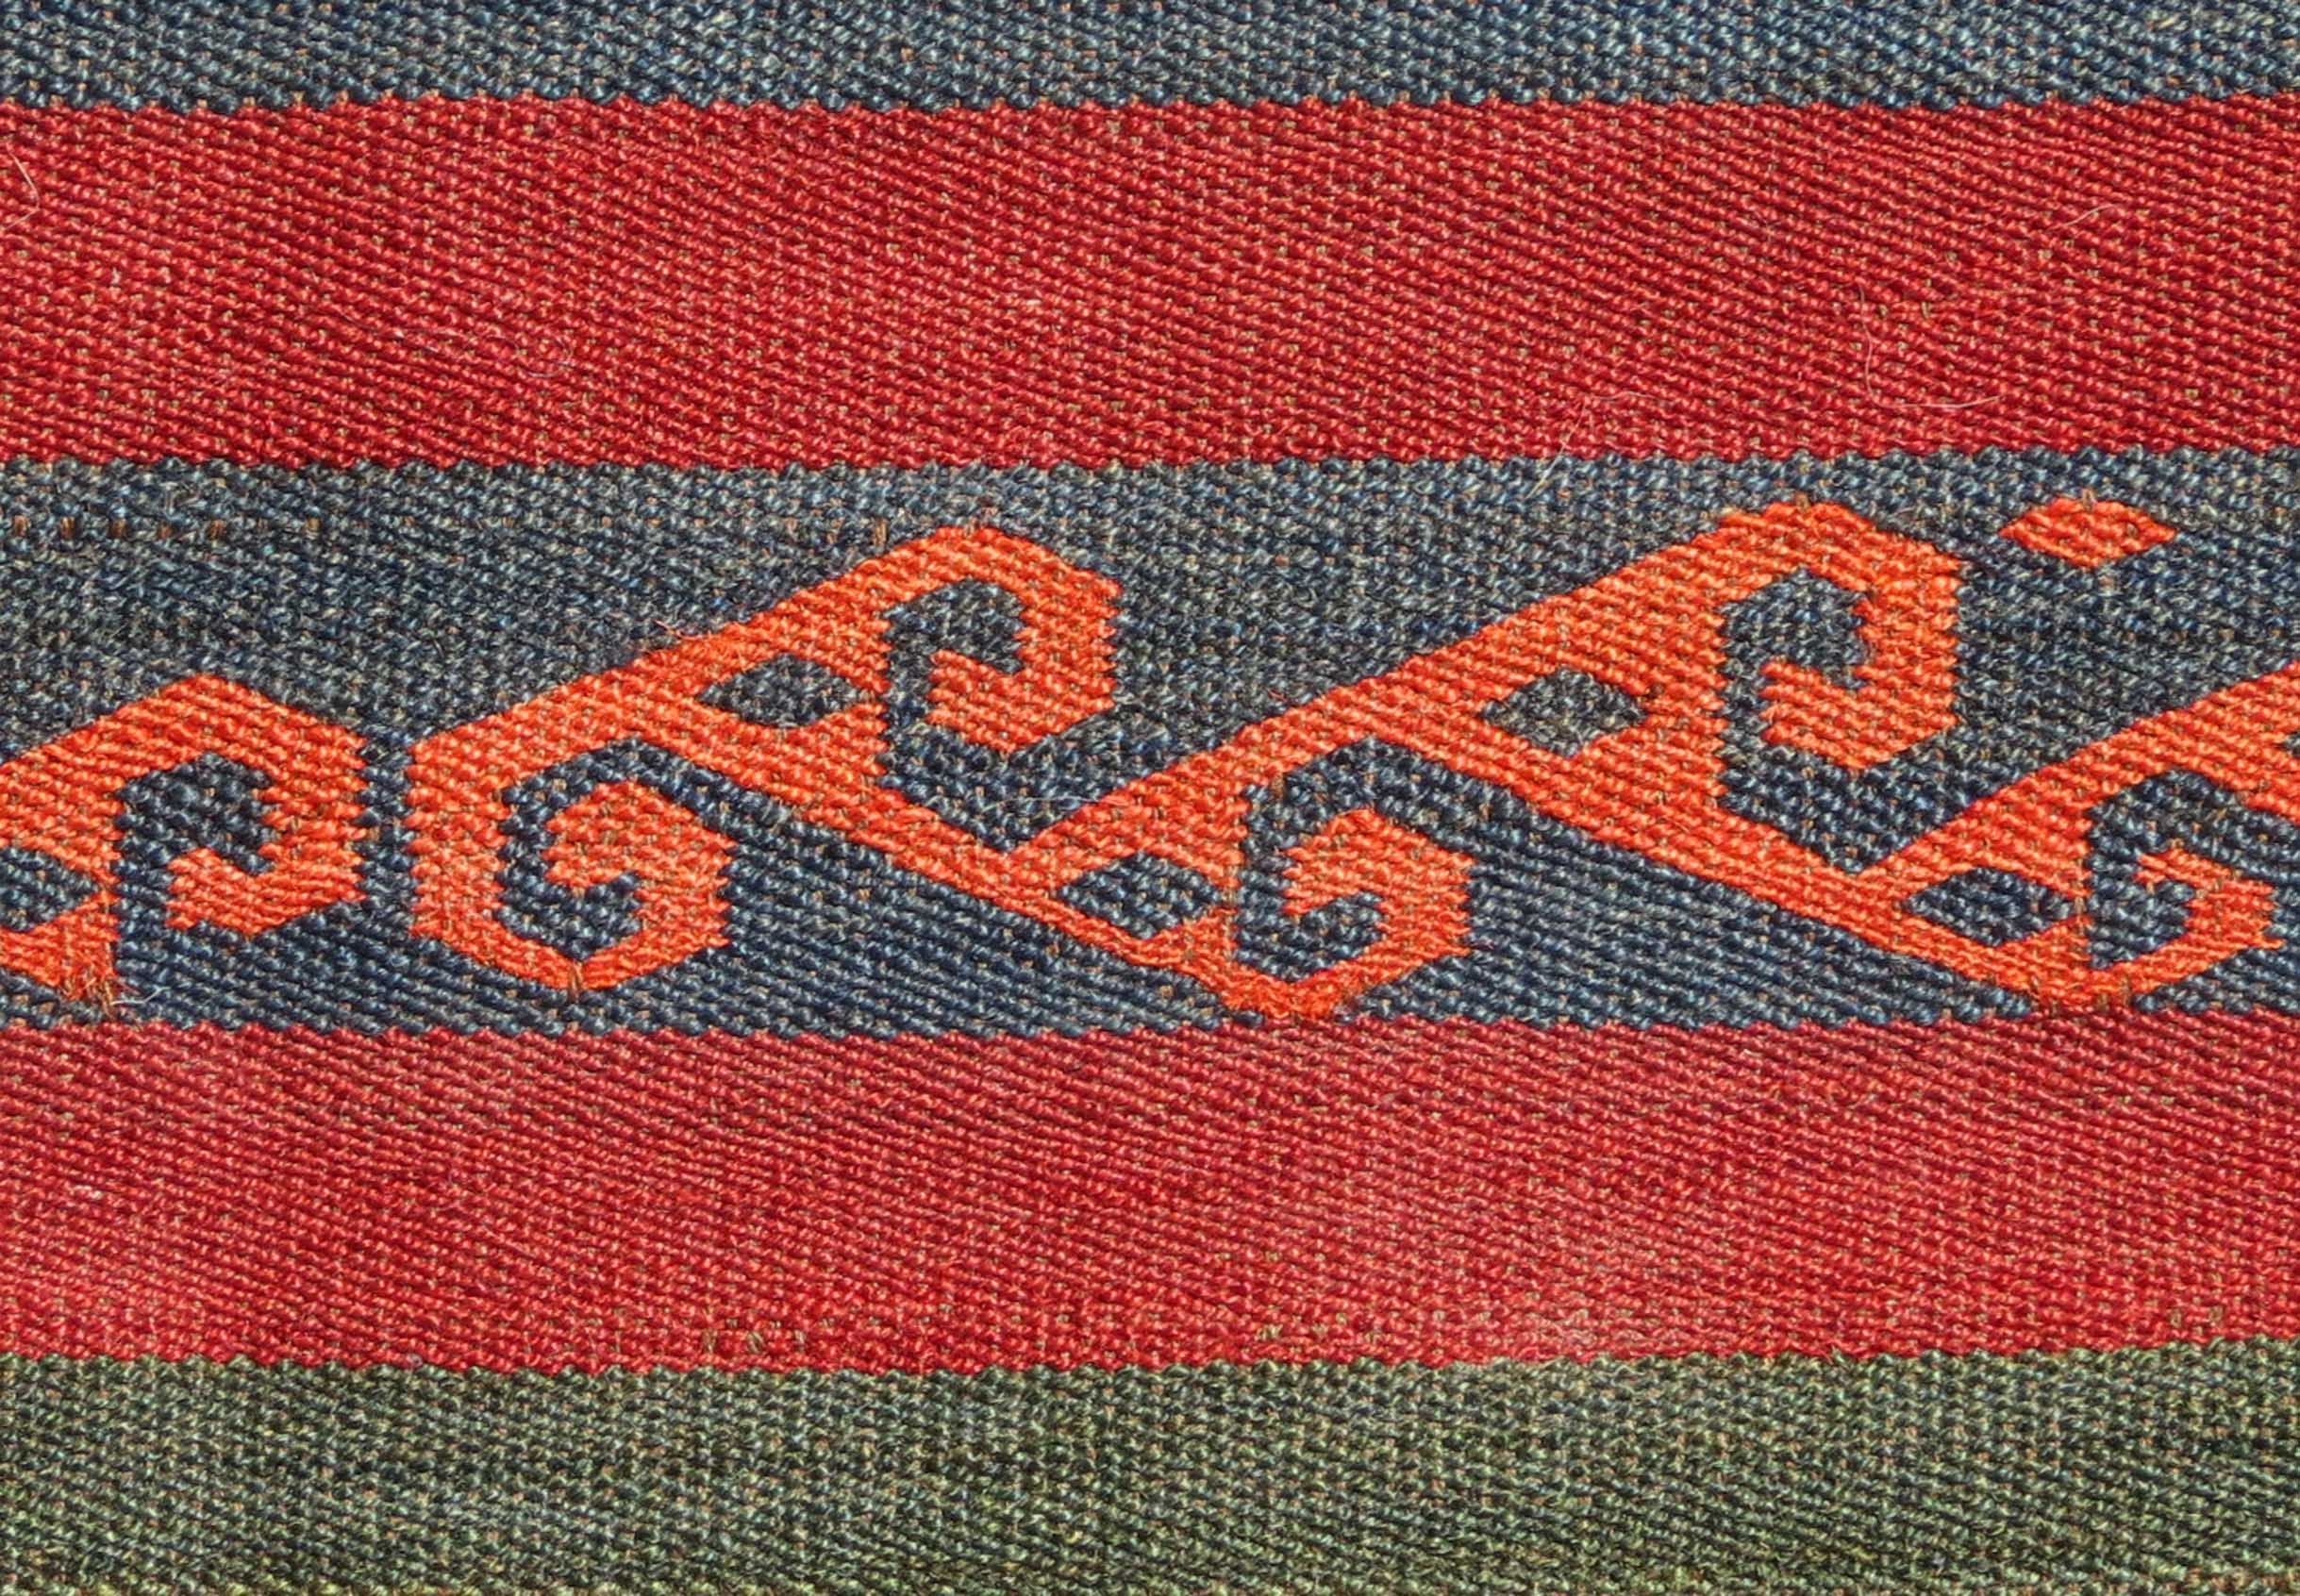 Detail - Uzbek Flat Weave, Central Asia, 19th century, 3' x 4'2